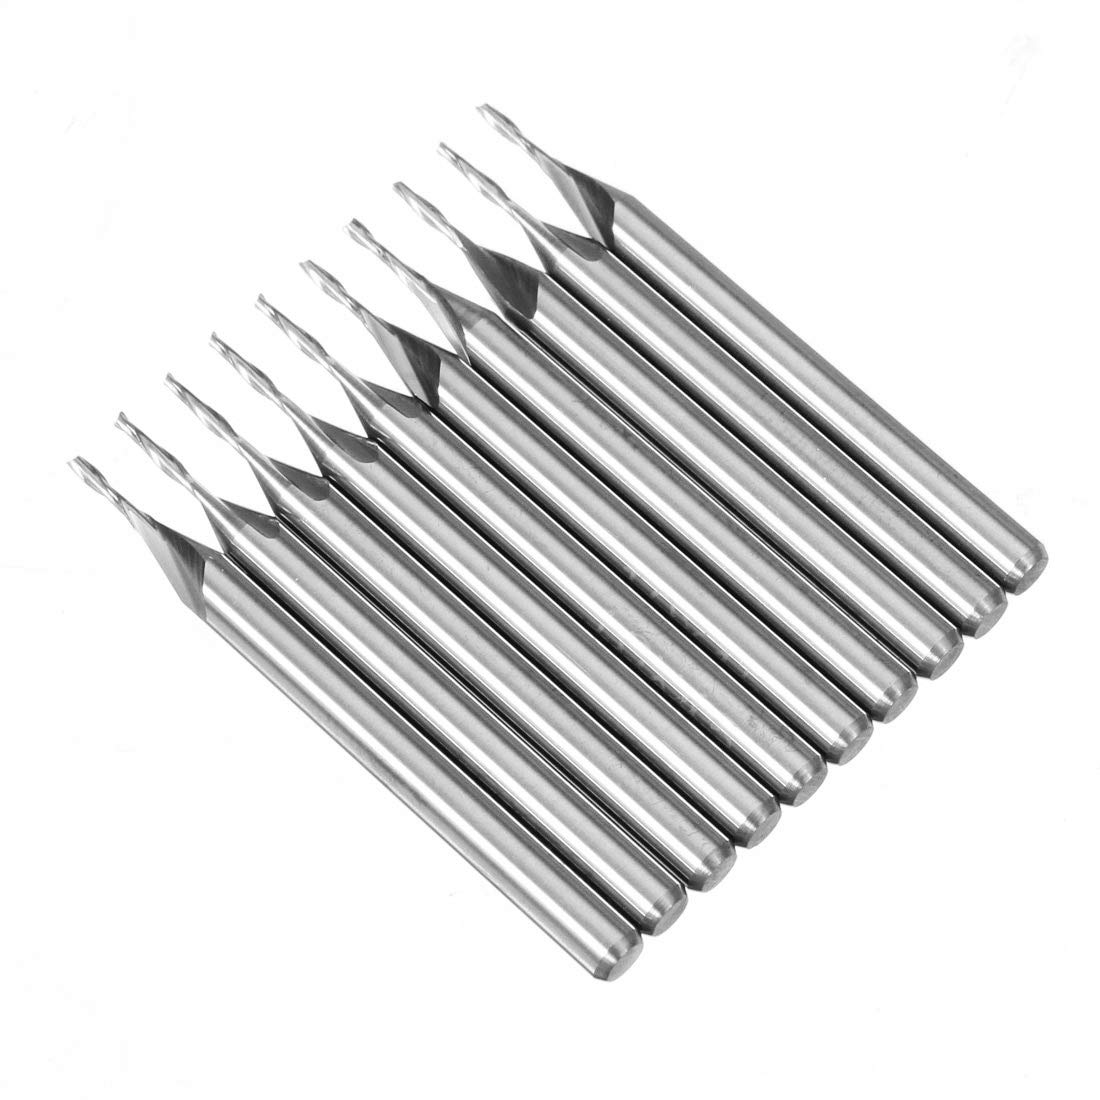 Carbide Milling Bits Double Flutes Spiral Carbide Flat Nose End Mill CNC Router Bit 1mm Cutting Dia. TranRay 1//8 Shank Dia